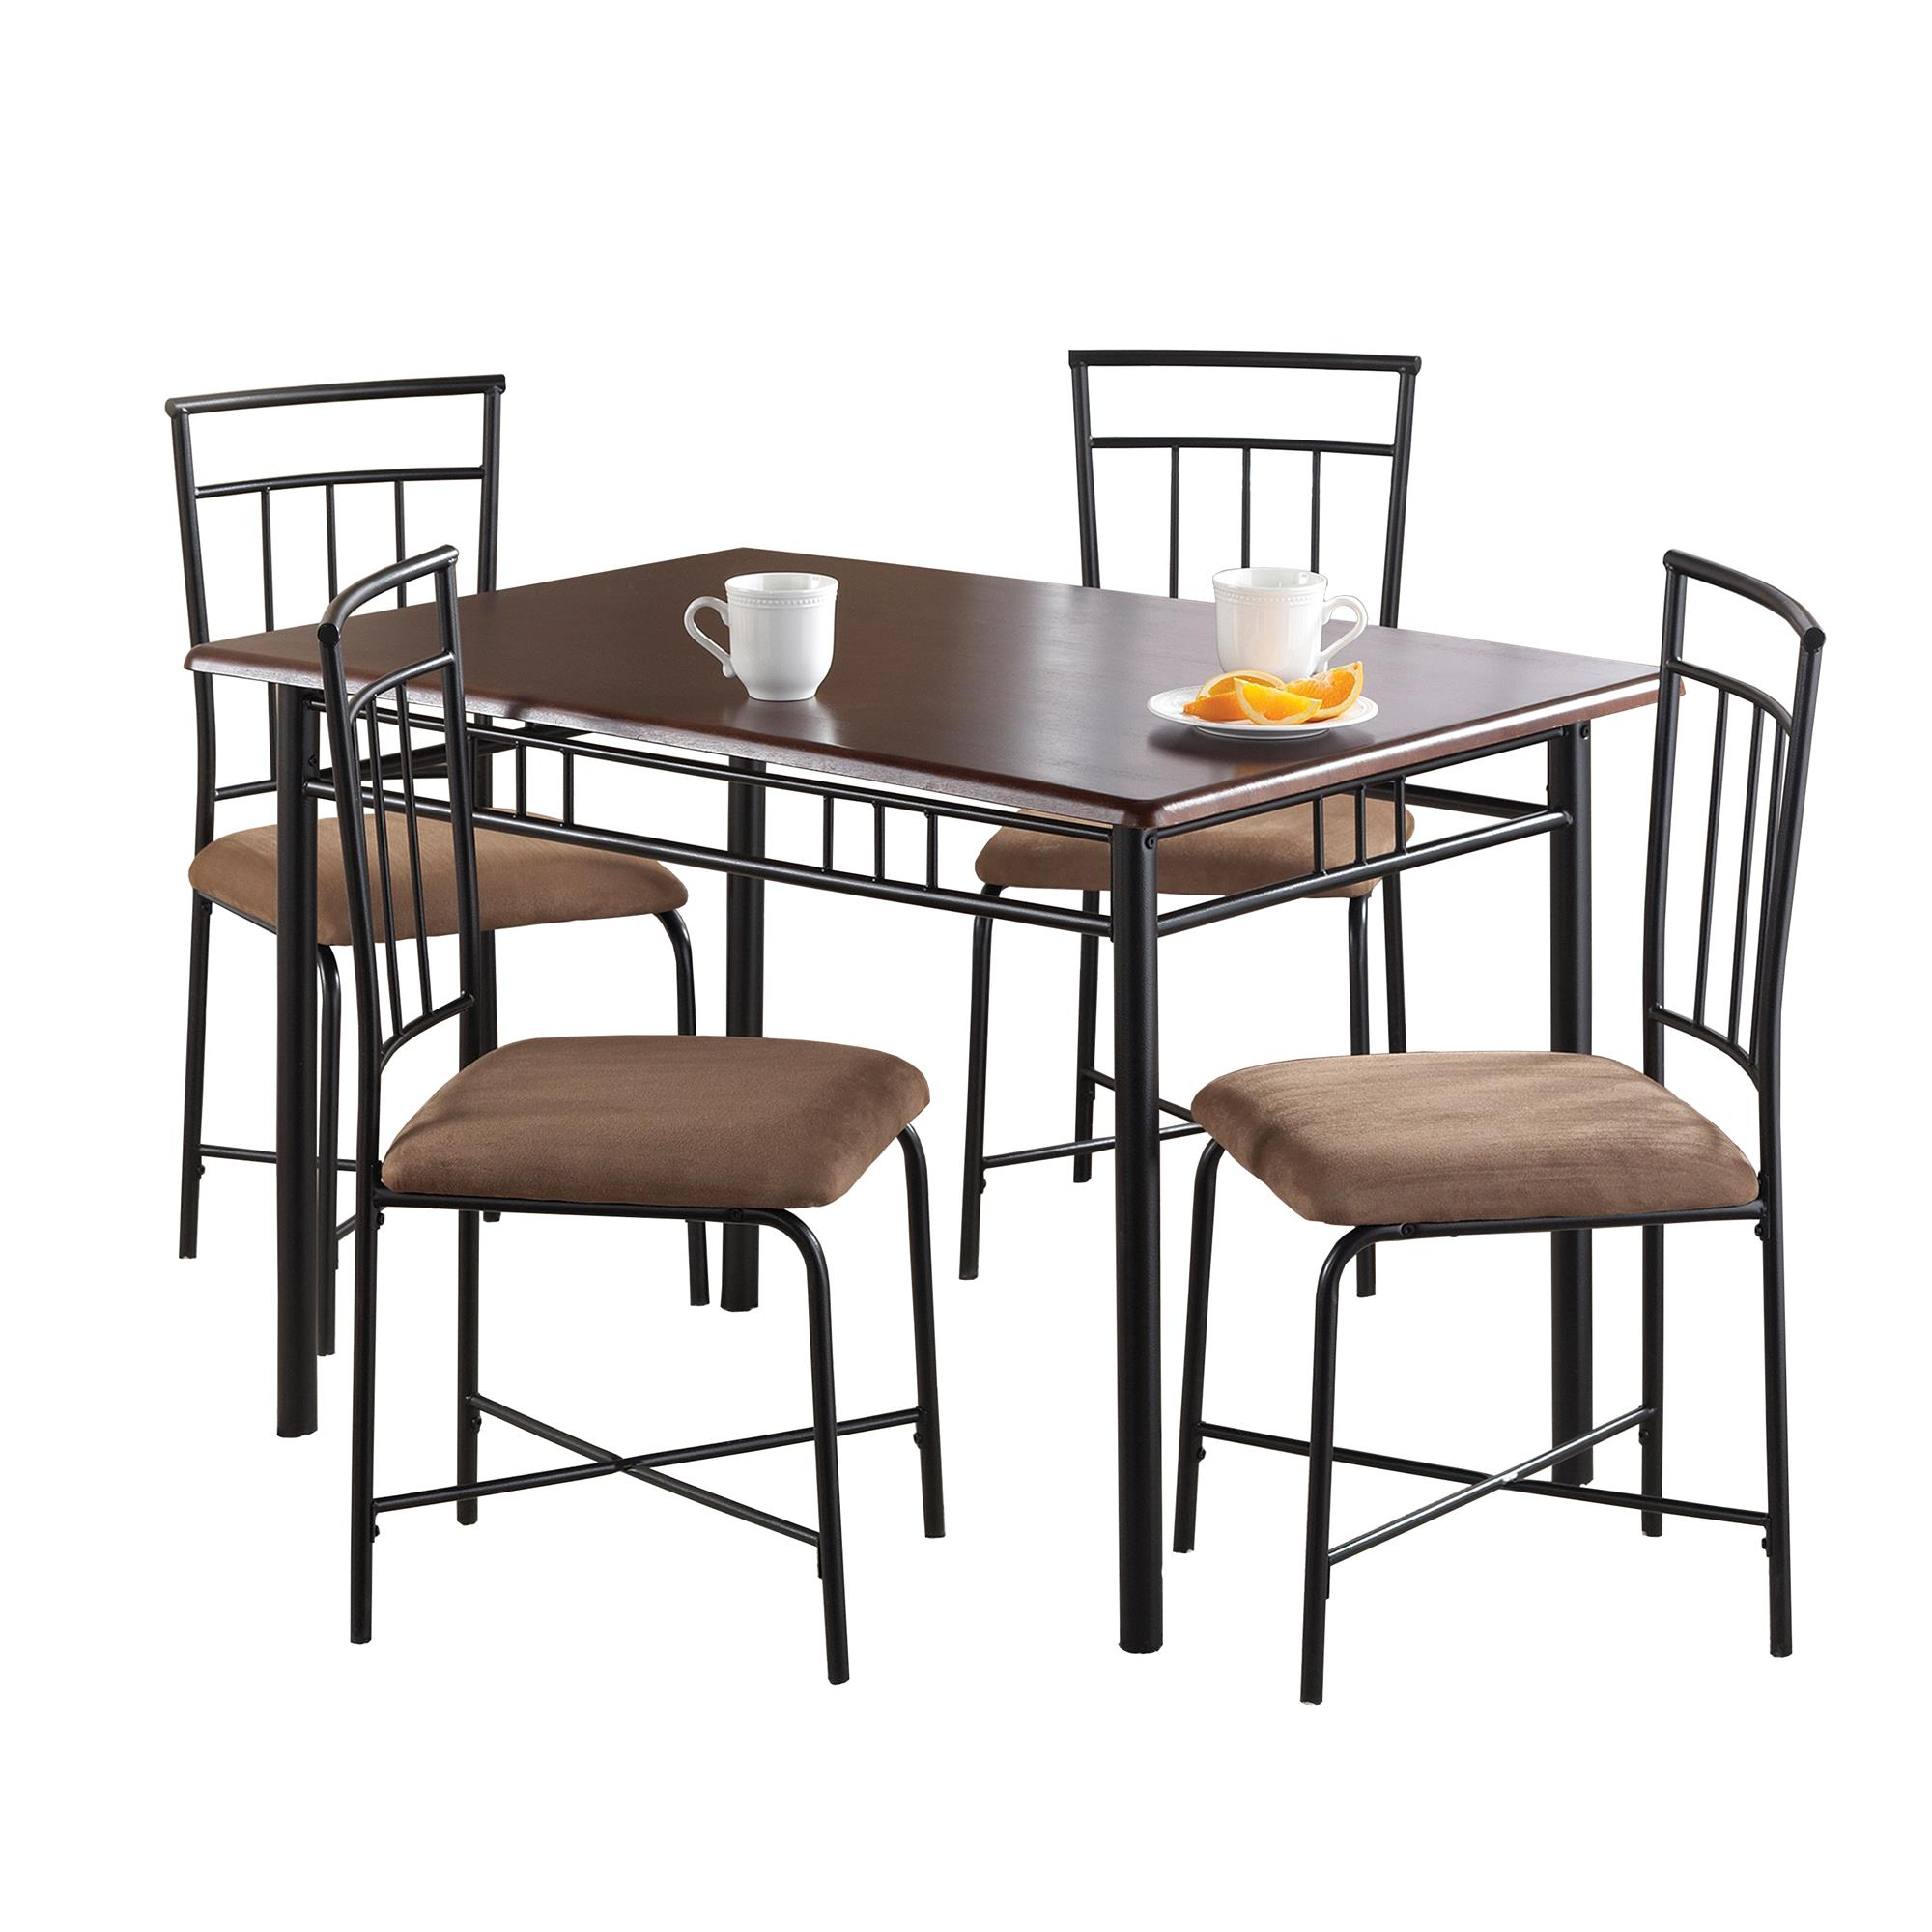 Fashionable Mainstays 5 Piece Dining Set, Multiple Colors – Walmart Pertaining To West Hill Family Table 3 Piece Dining Sets (View 11 of 25)